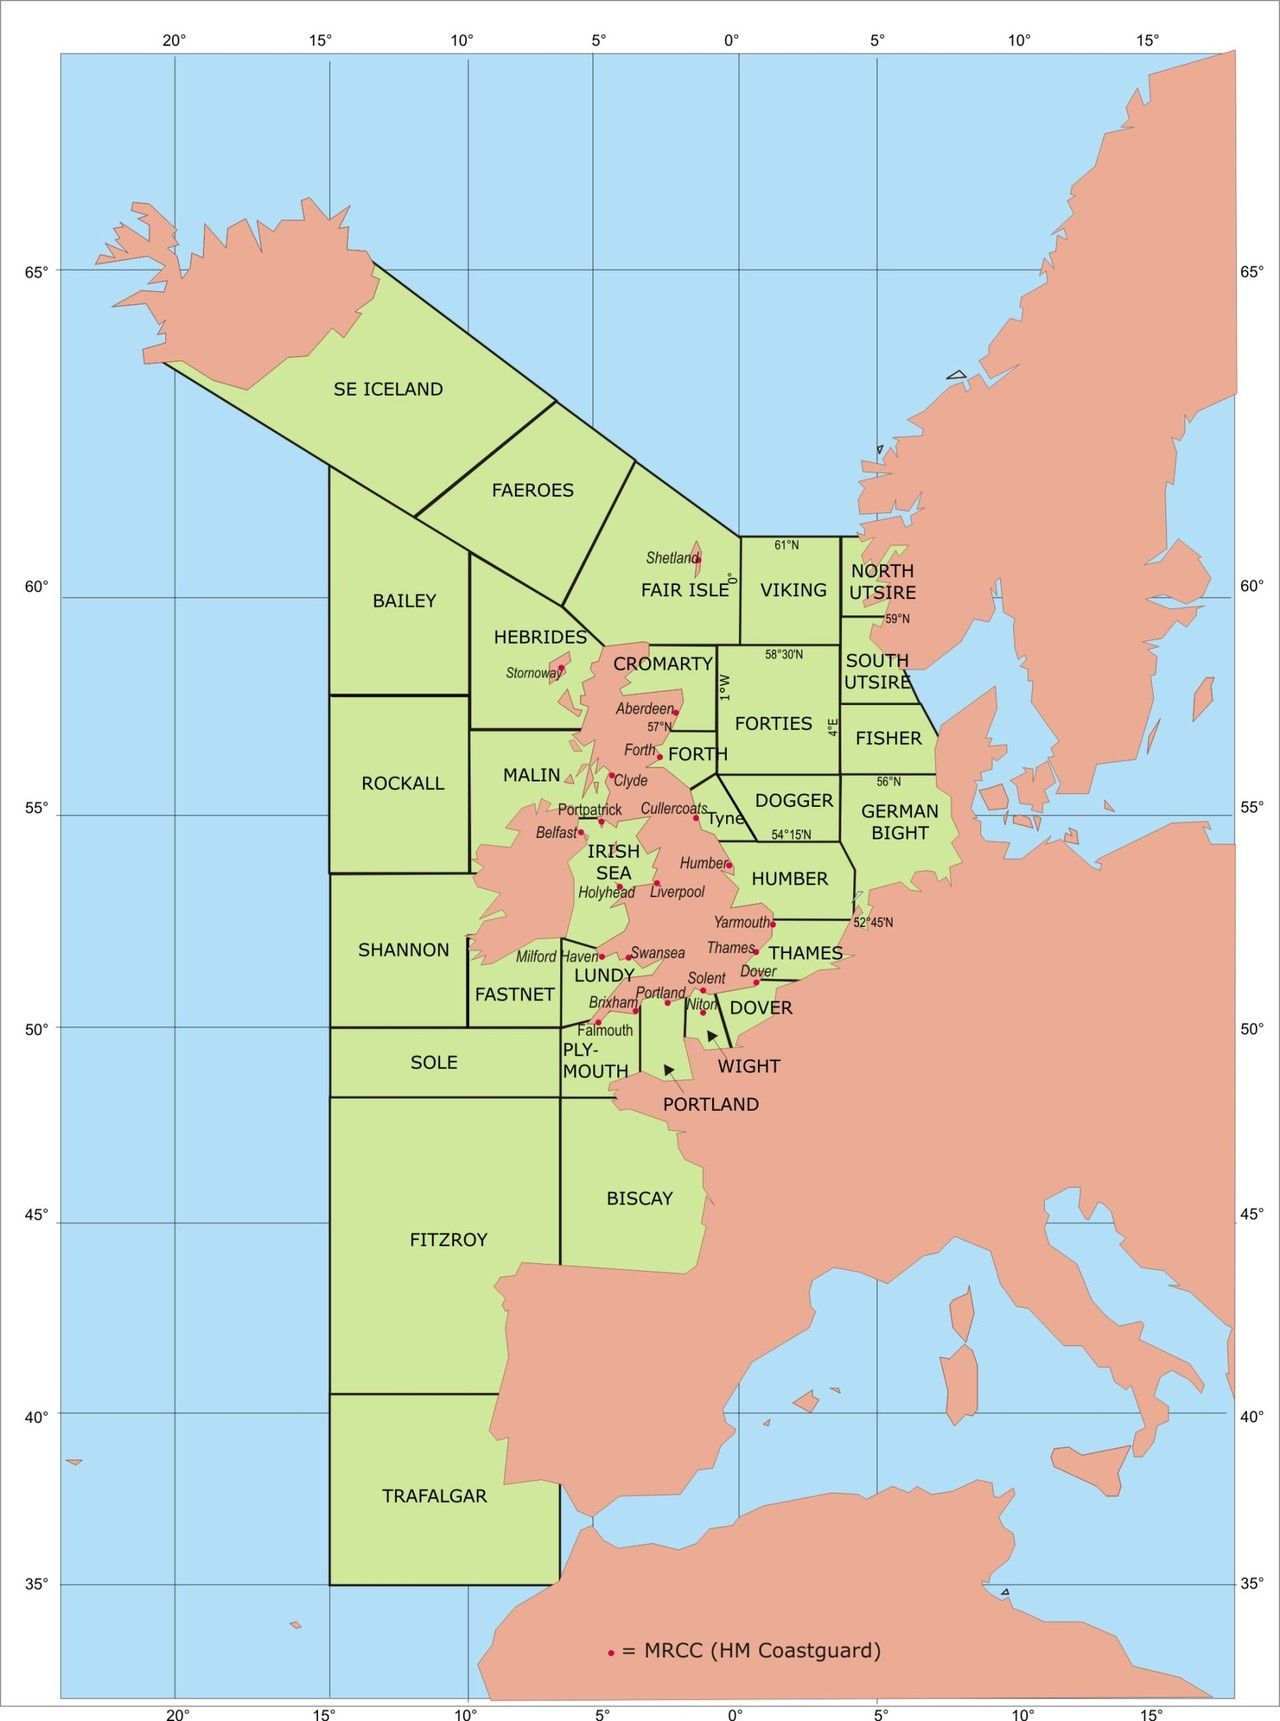 Shipping Forecast Map UK Shipping Forecast areas | Art in 2019 | Map, Area map, European map